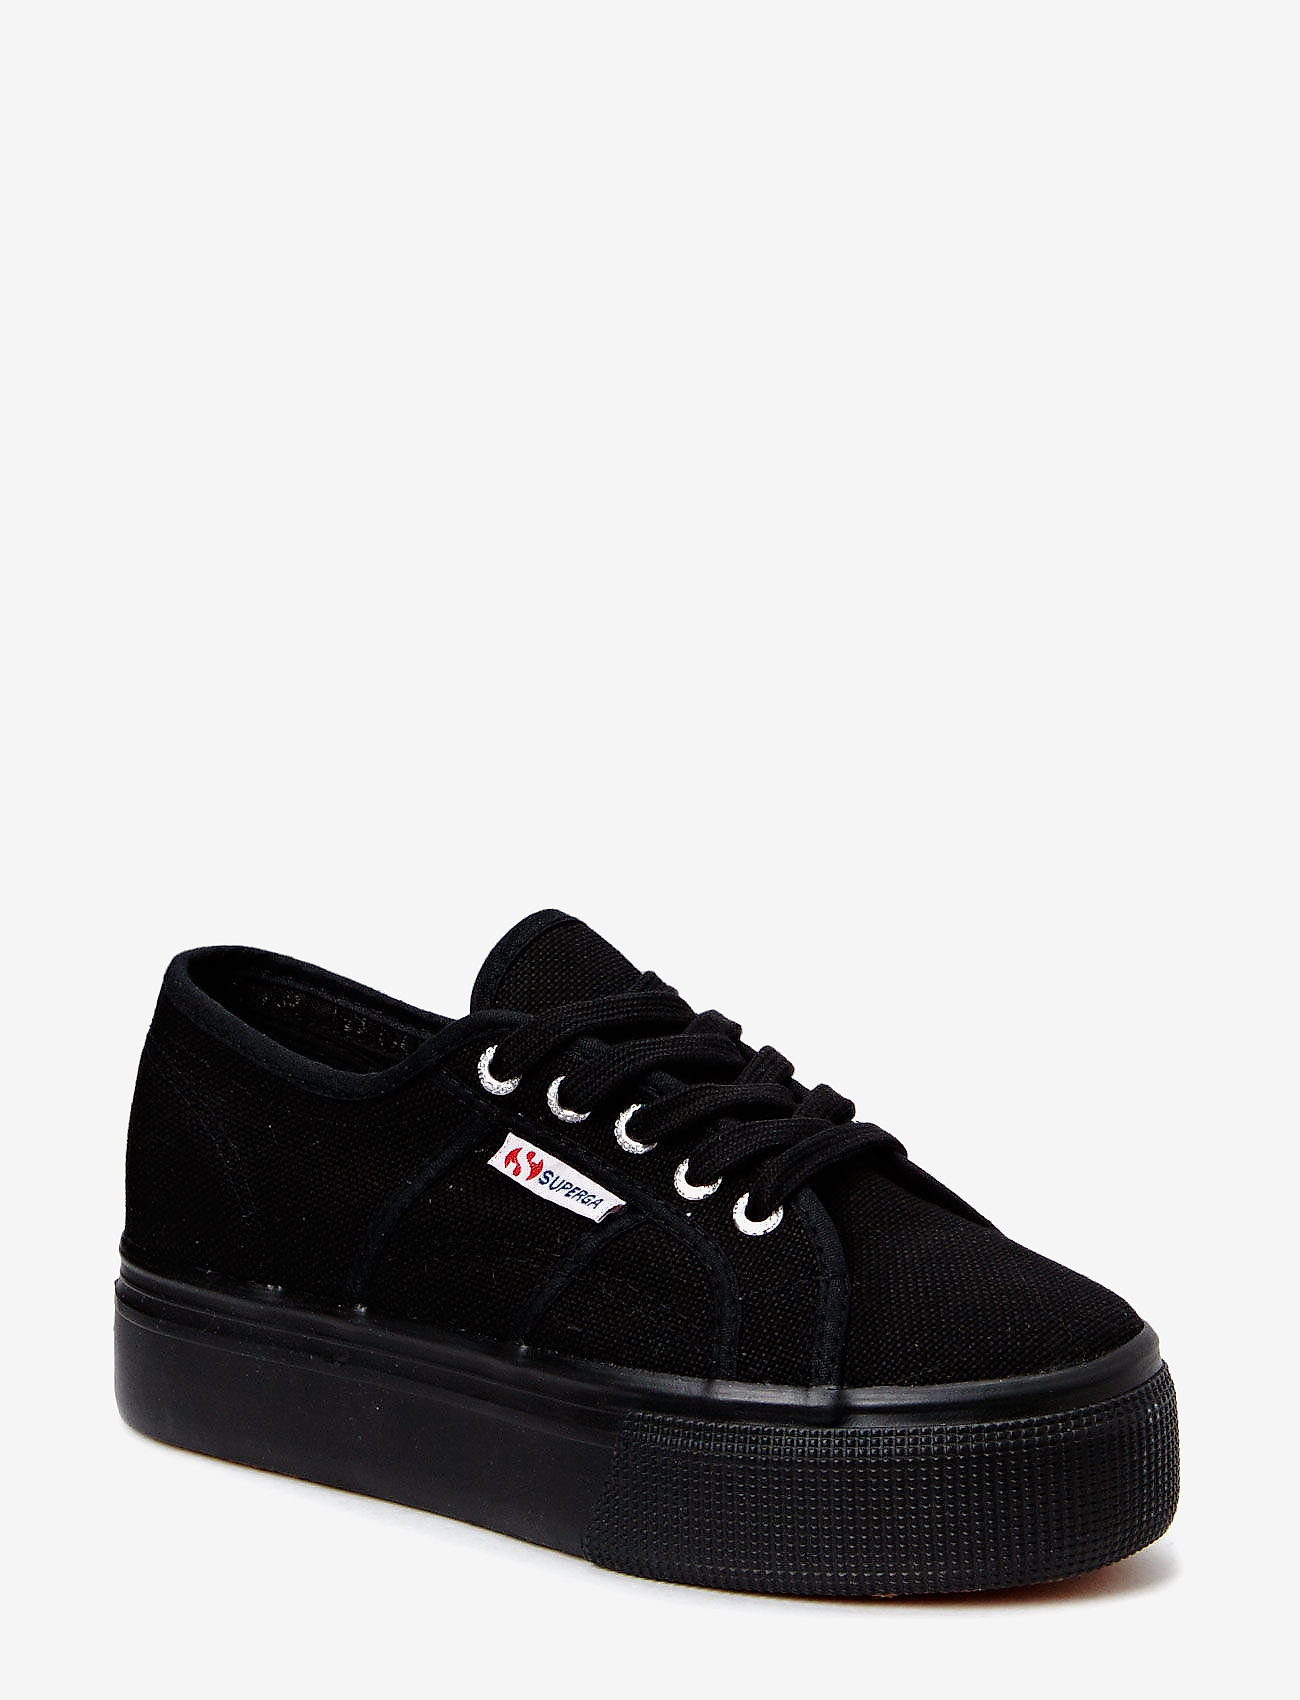 Superga - Superga 2790-Acotw Linea - låga sneakers - full black - 0